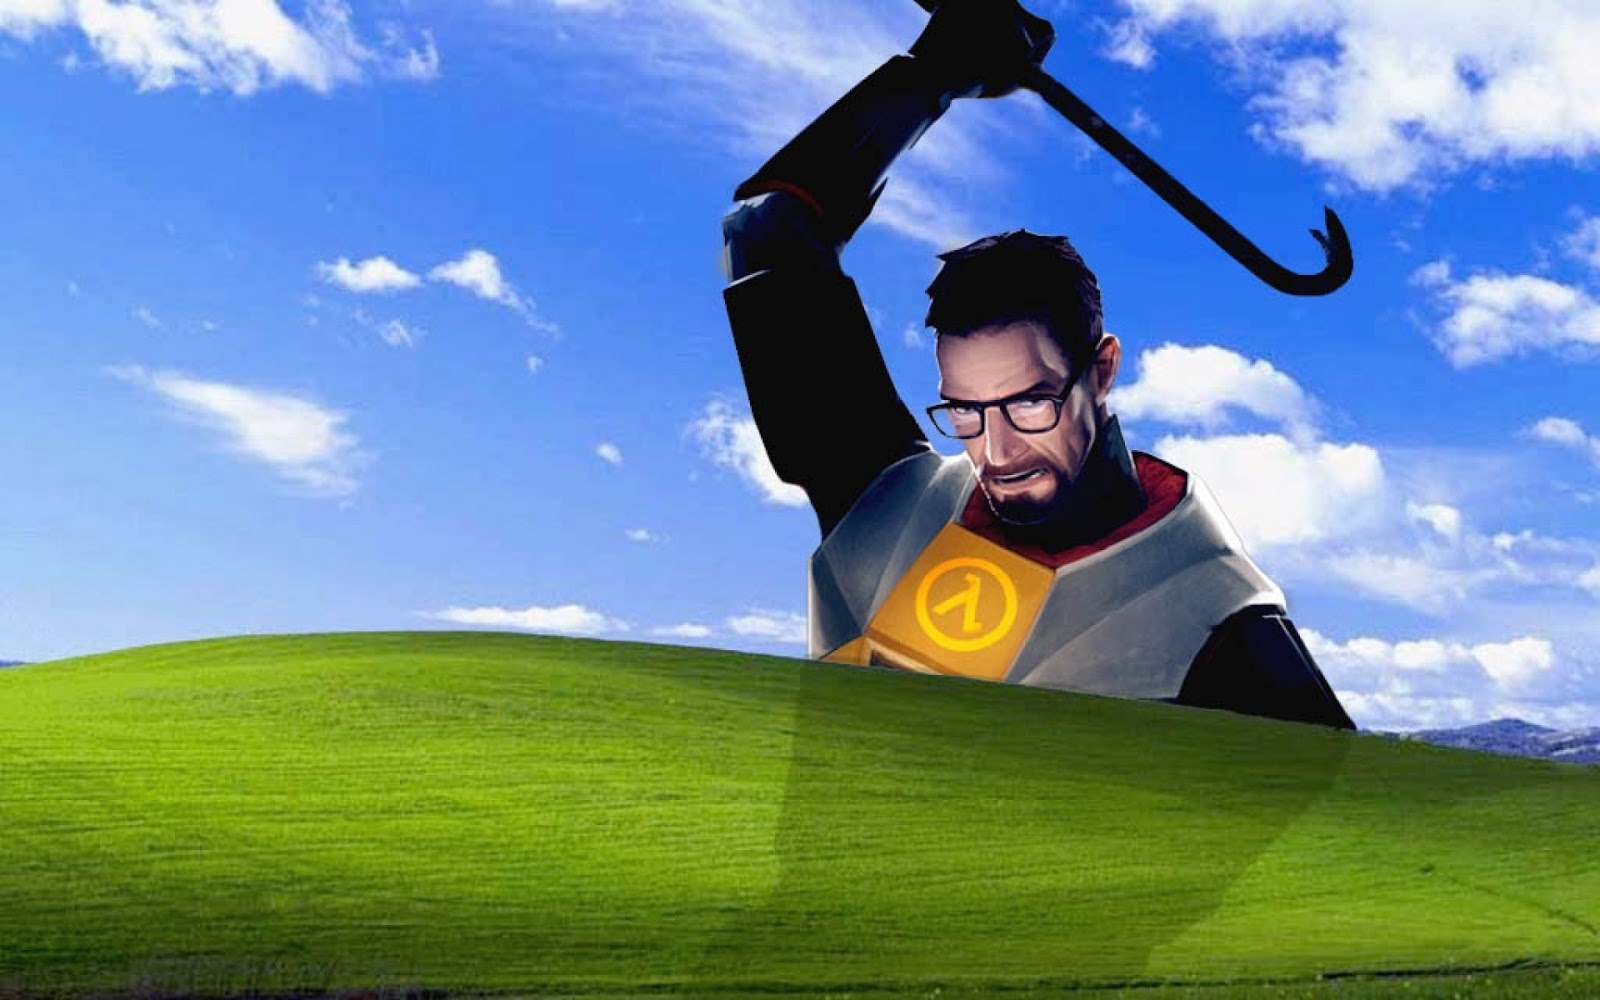 freeman microsoft windows halflife 2 1024x768 wallpaper Wallpaper 1600x1000